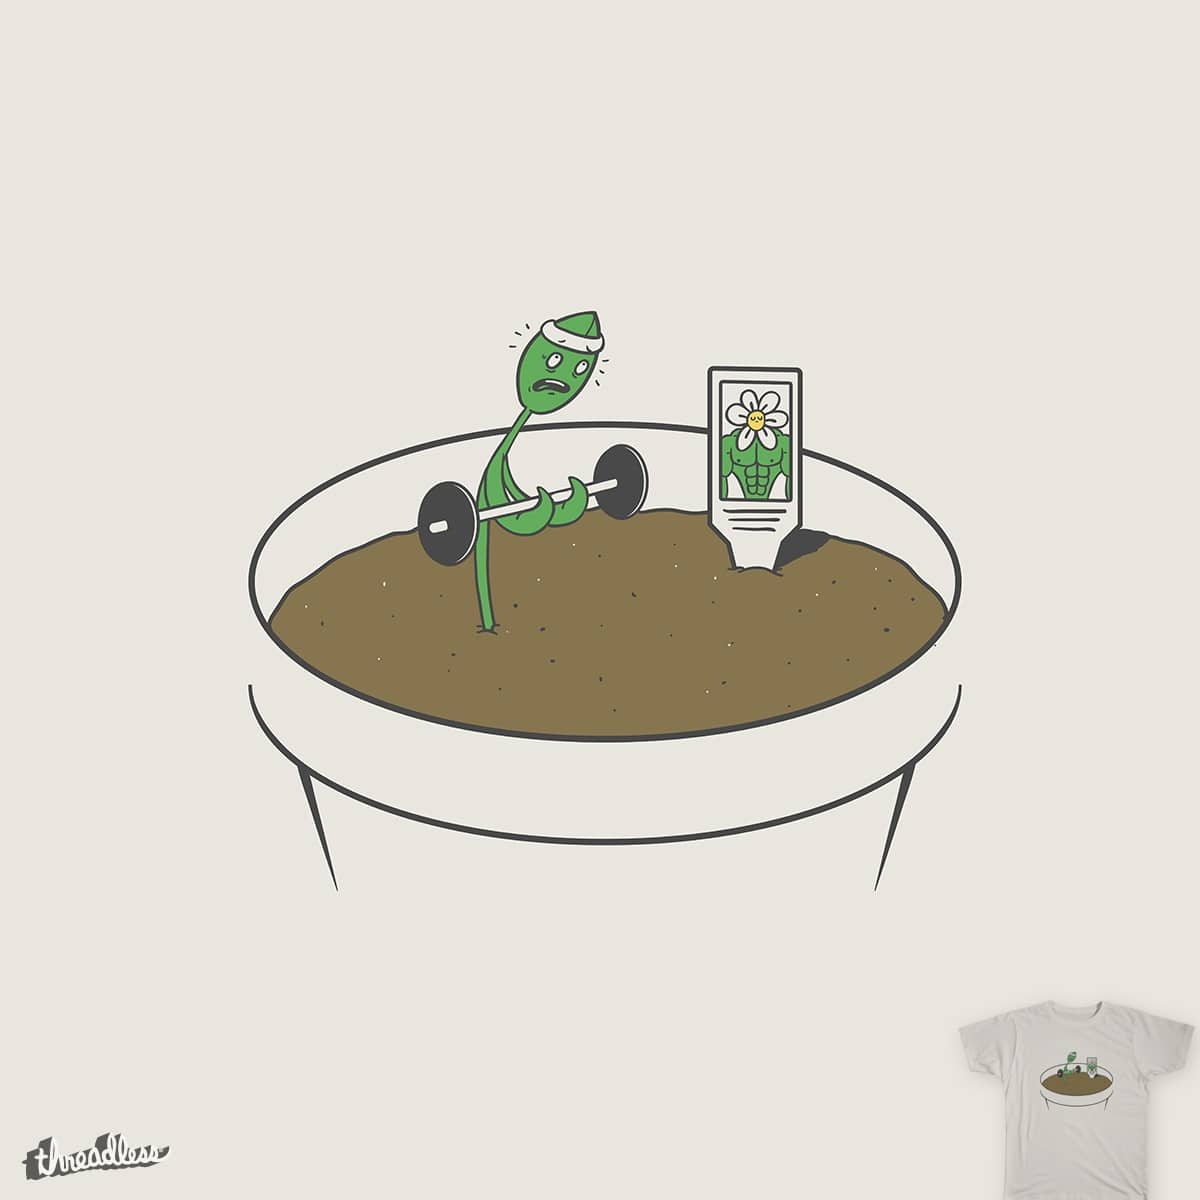 Spring Training by murraymullet on Threadless